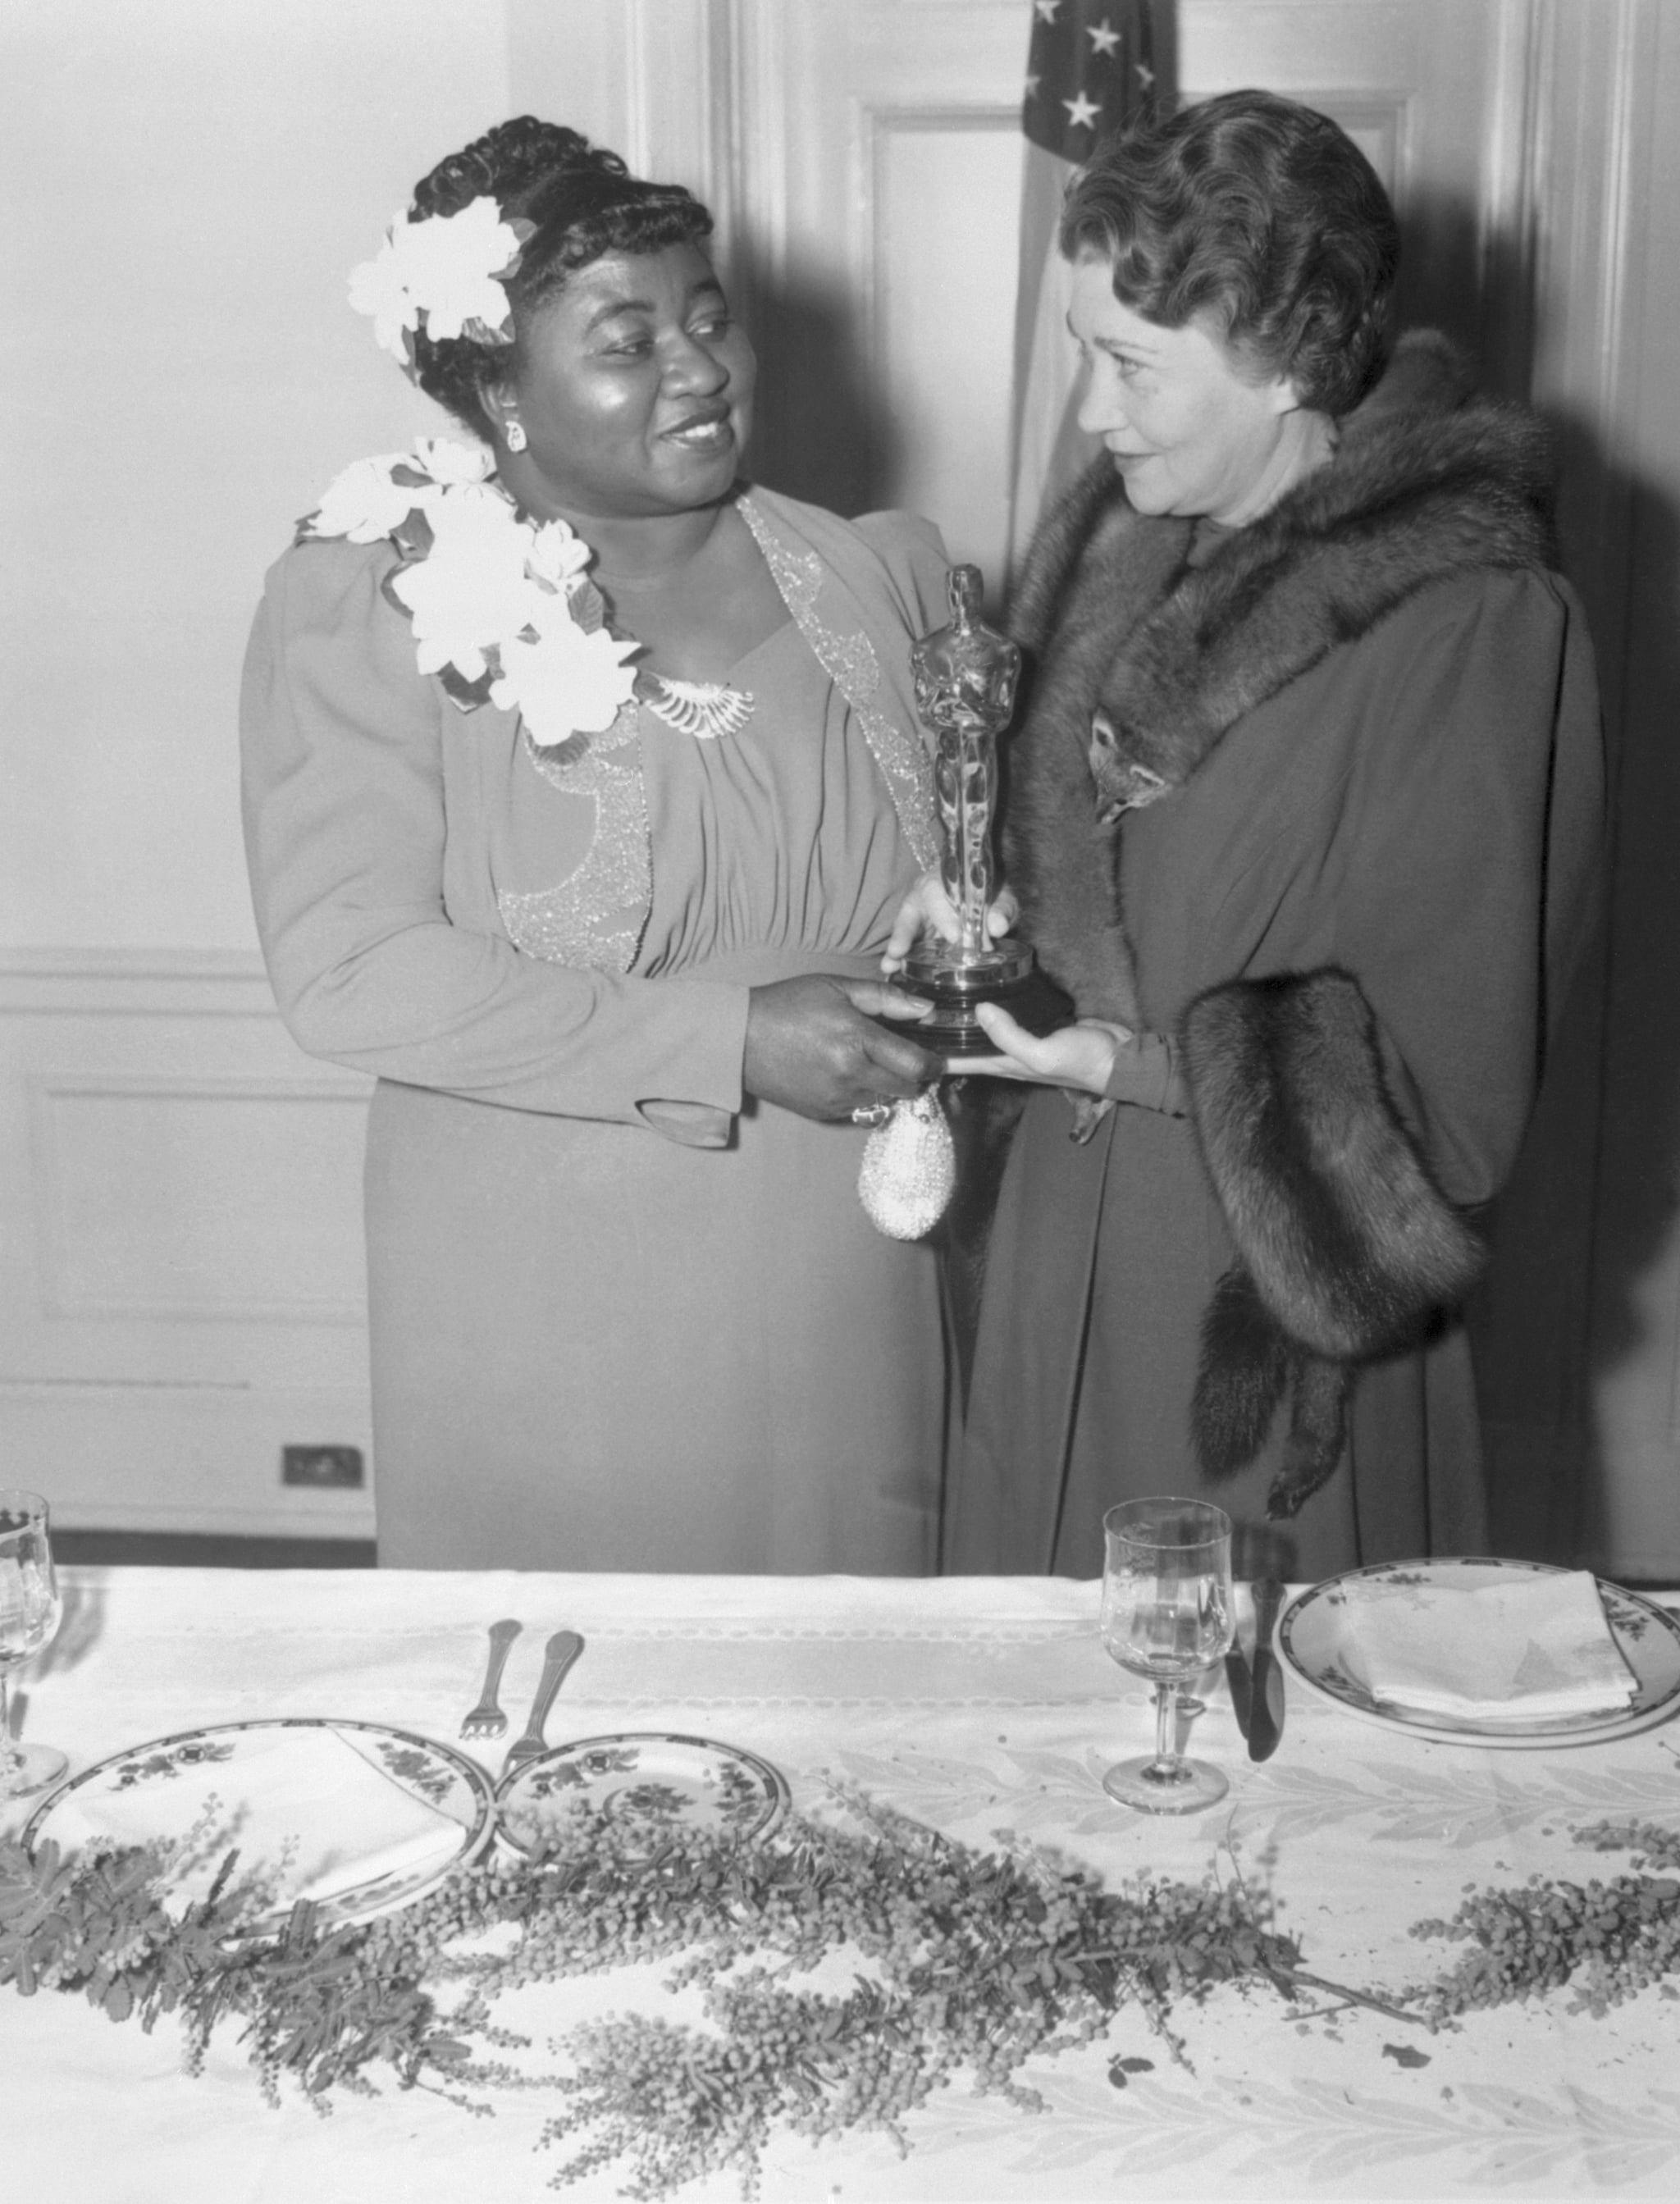 (Original Caption) Twelfth Annual Banquet of the Academy of Motion Picture Arts and Sciences. Los Angeles, California: Actress Fay Bainter (right) presenting Hattie McDaniel (left) her award for her supporting role in Gone With the Wind. February 29, 1940.